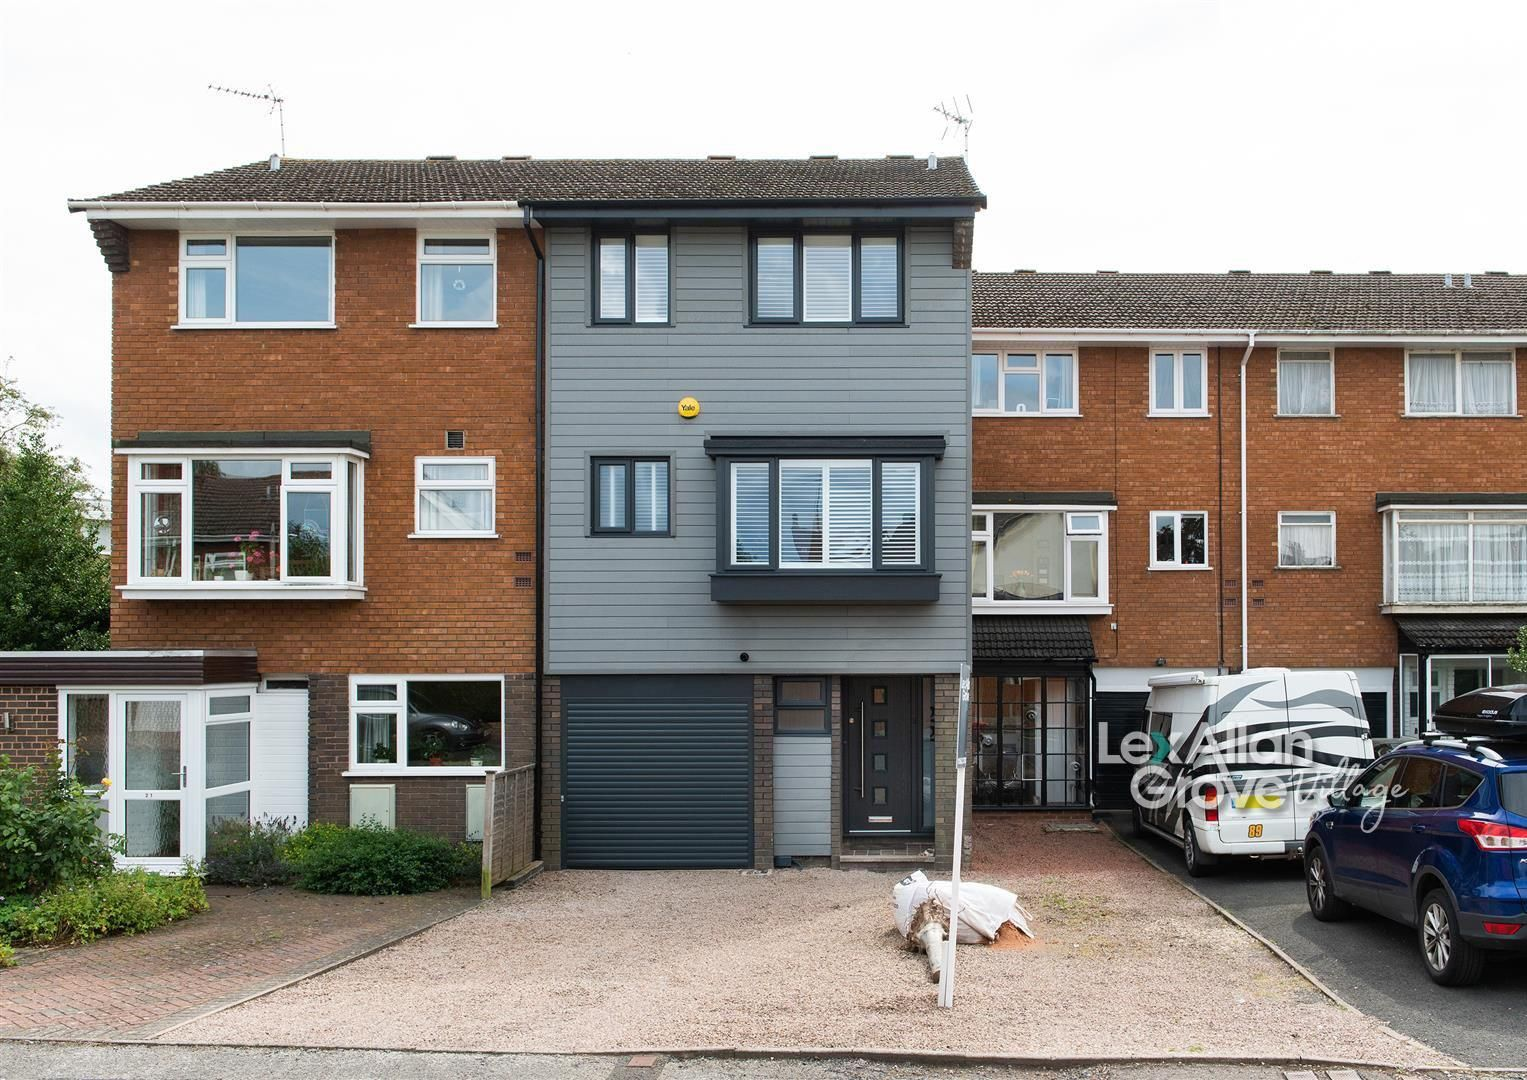 3 bed town-house for sale in Hagley  - Property Image 1